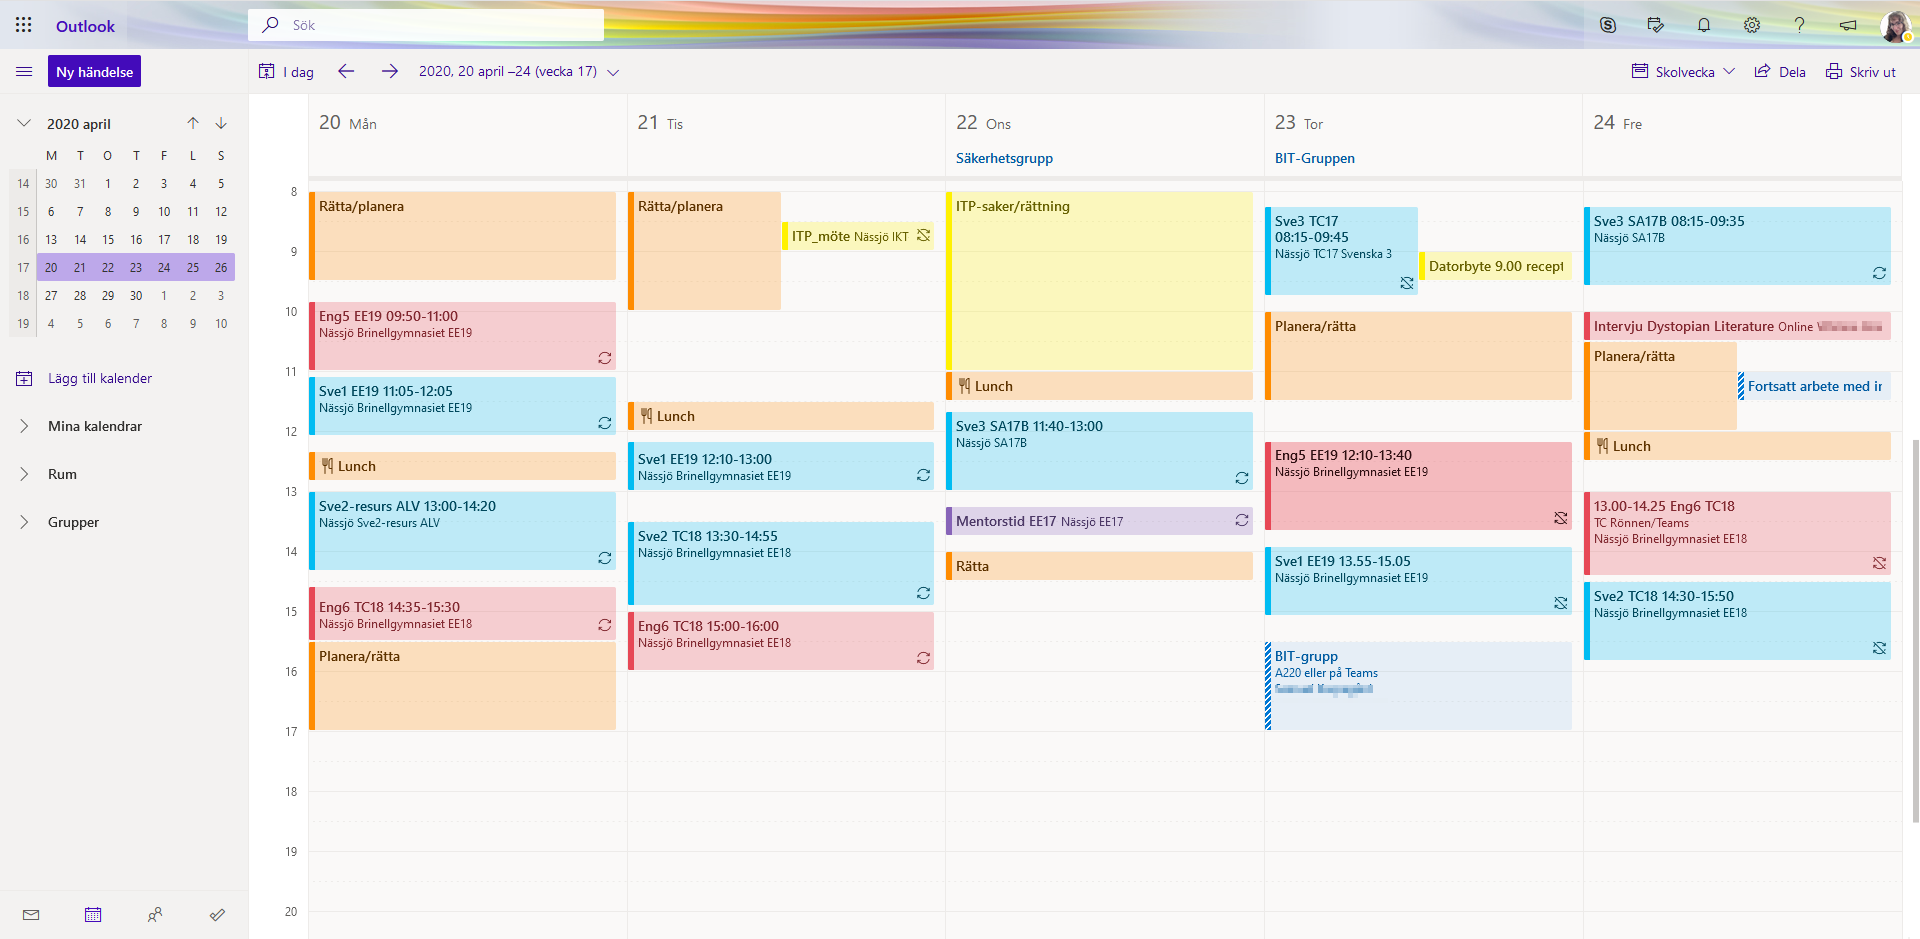 Calendar sample of my work week during spring 2020 as seen from the webversion of Office 365